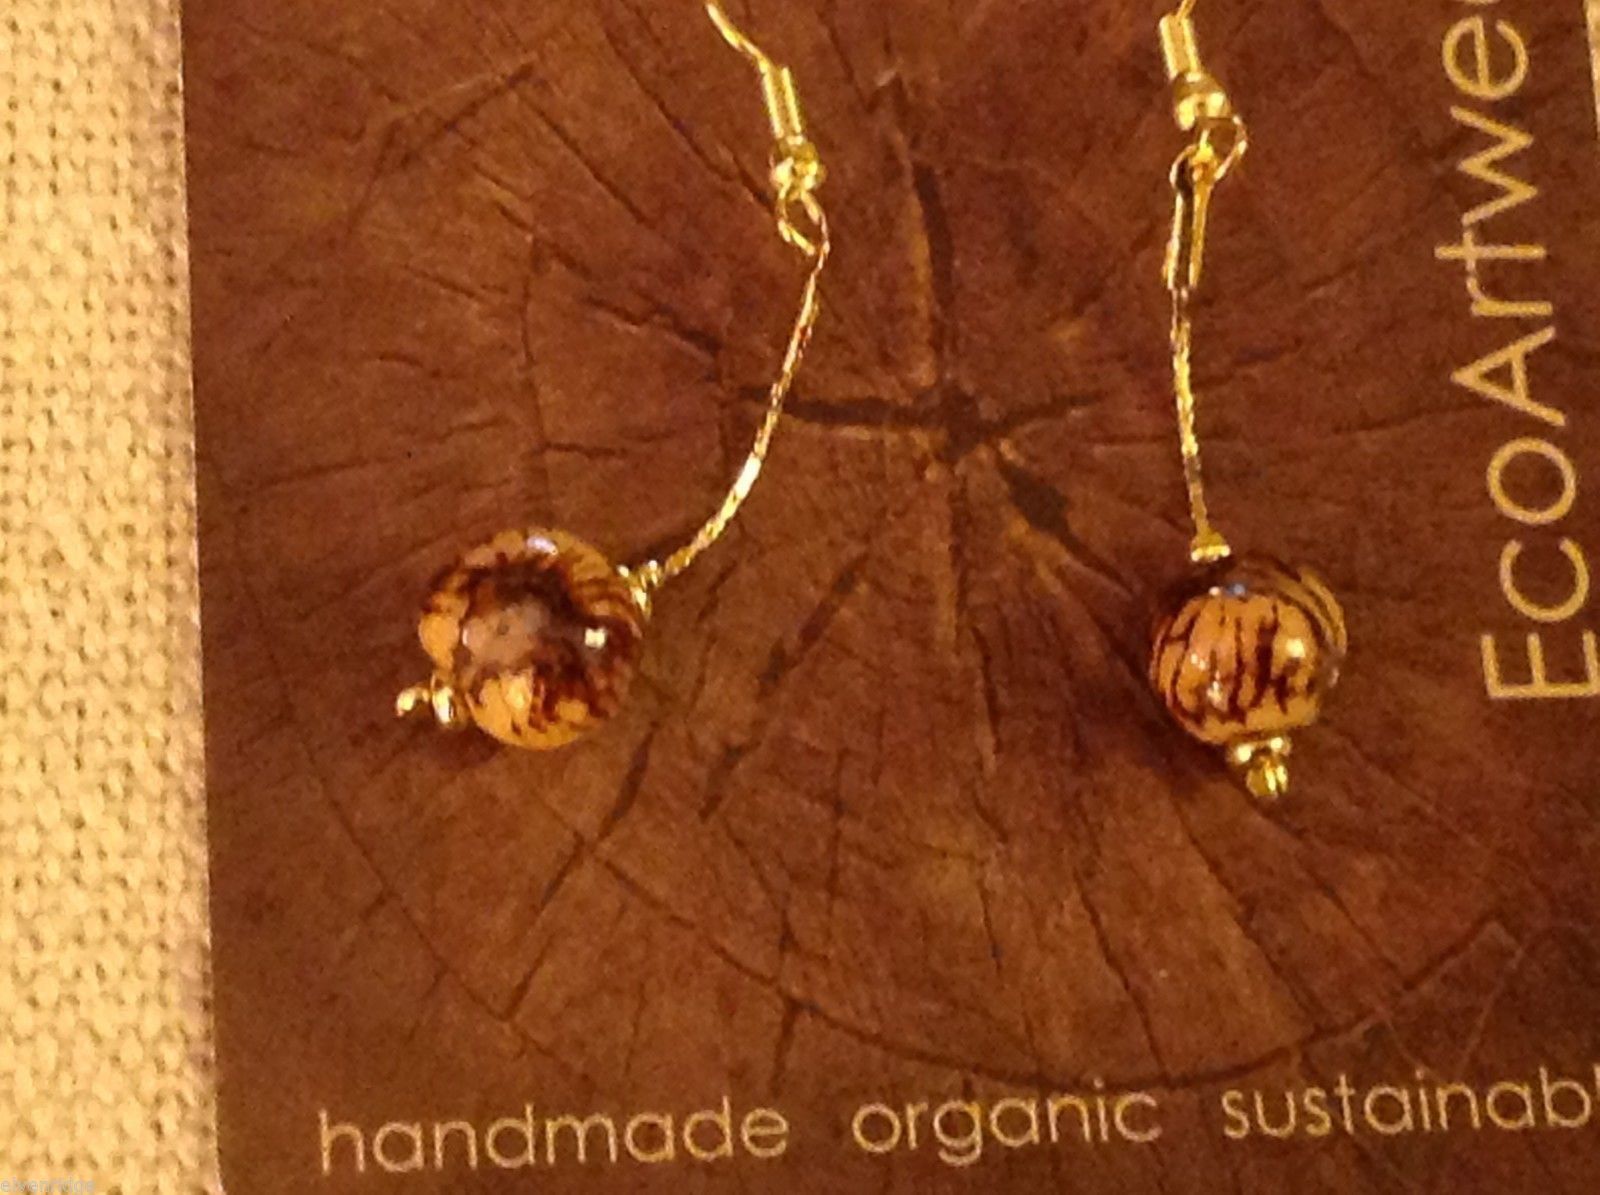 Shade choice of acai berry seed earrings by Terra help sustain amazon rainforest